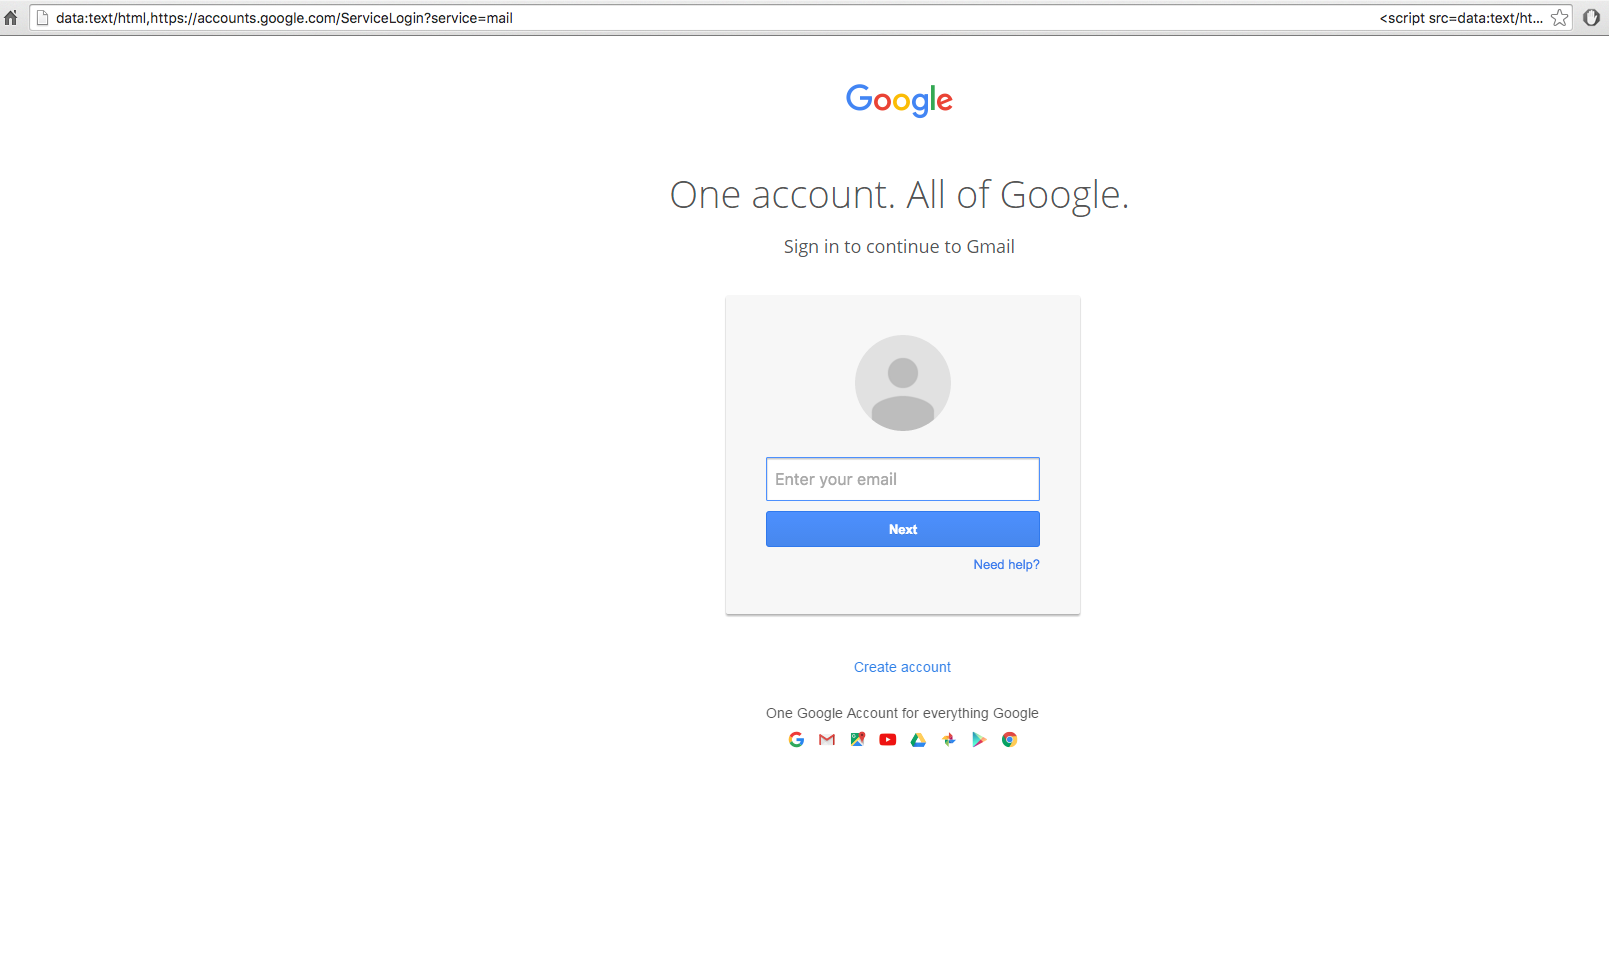 Insidious phishing attack leverages on fake attachments to steal Gmail credentials